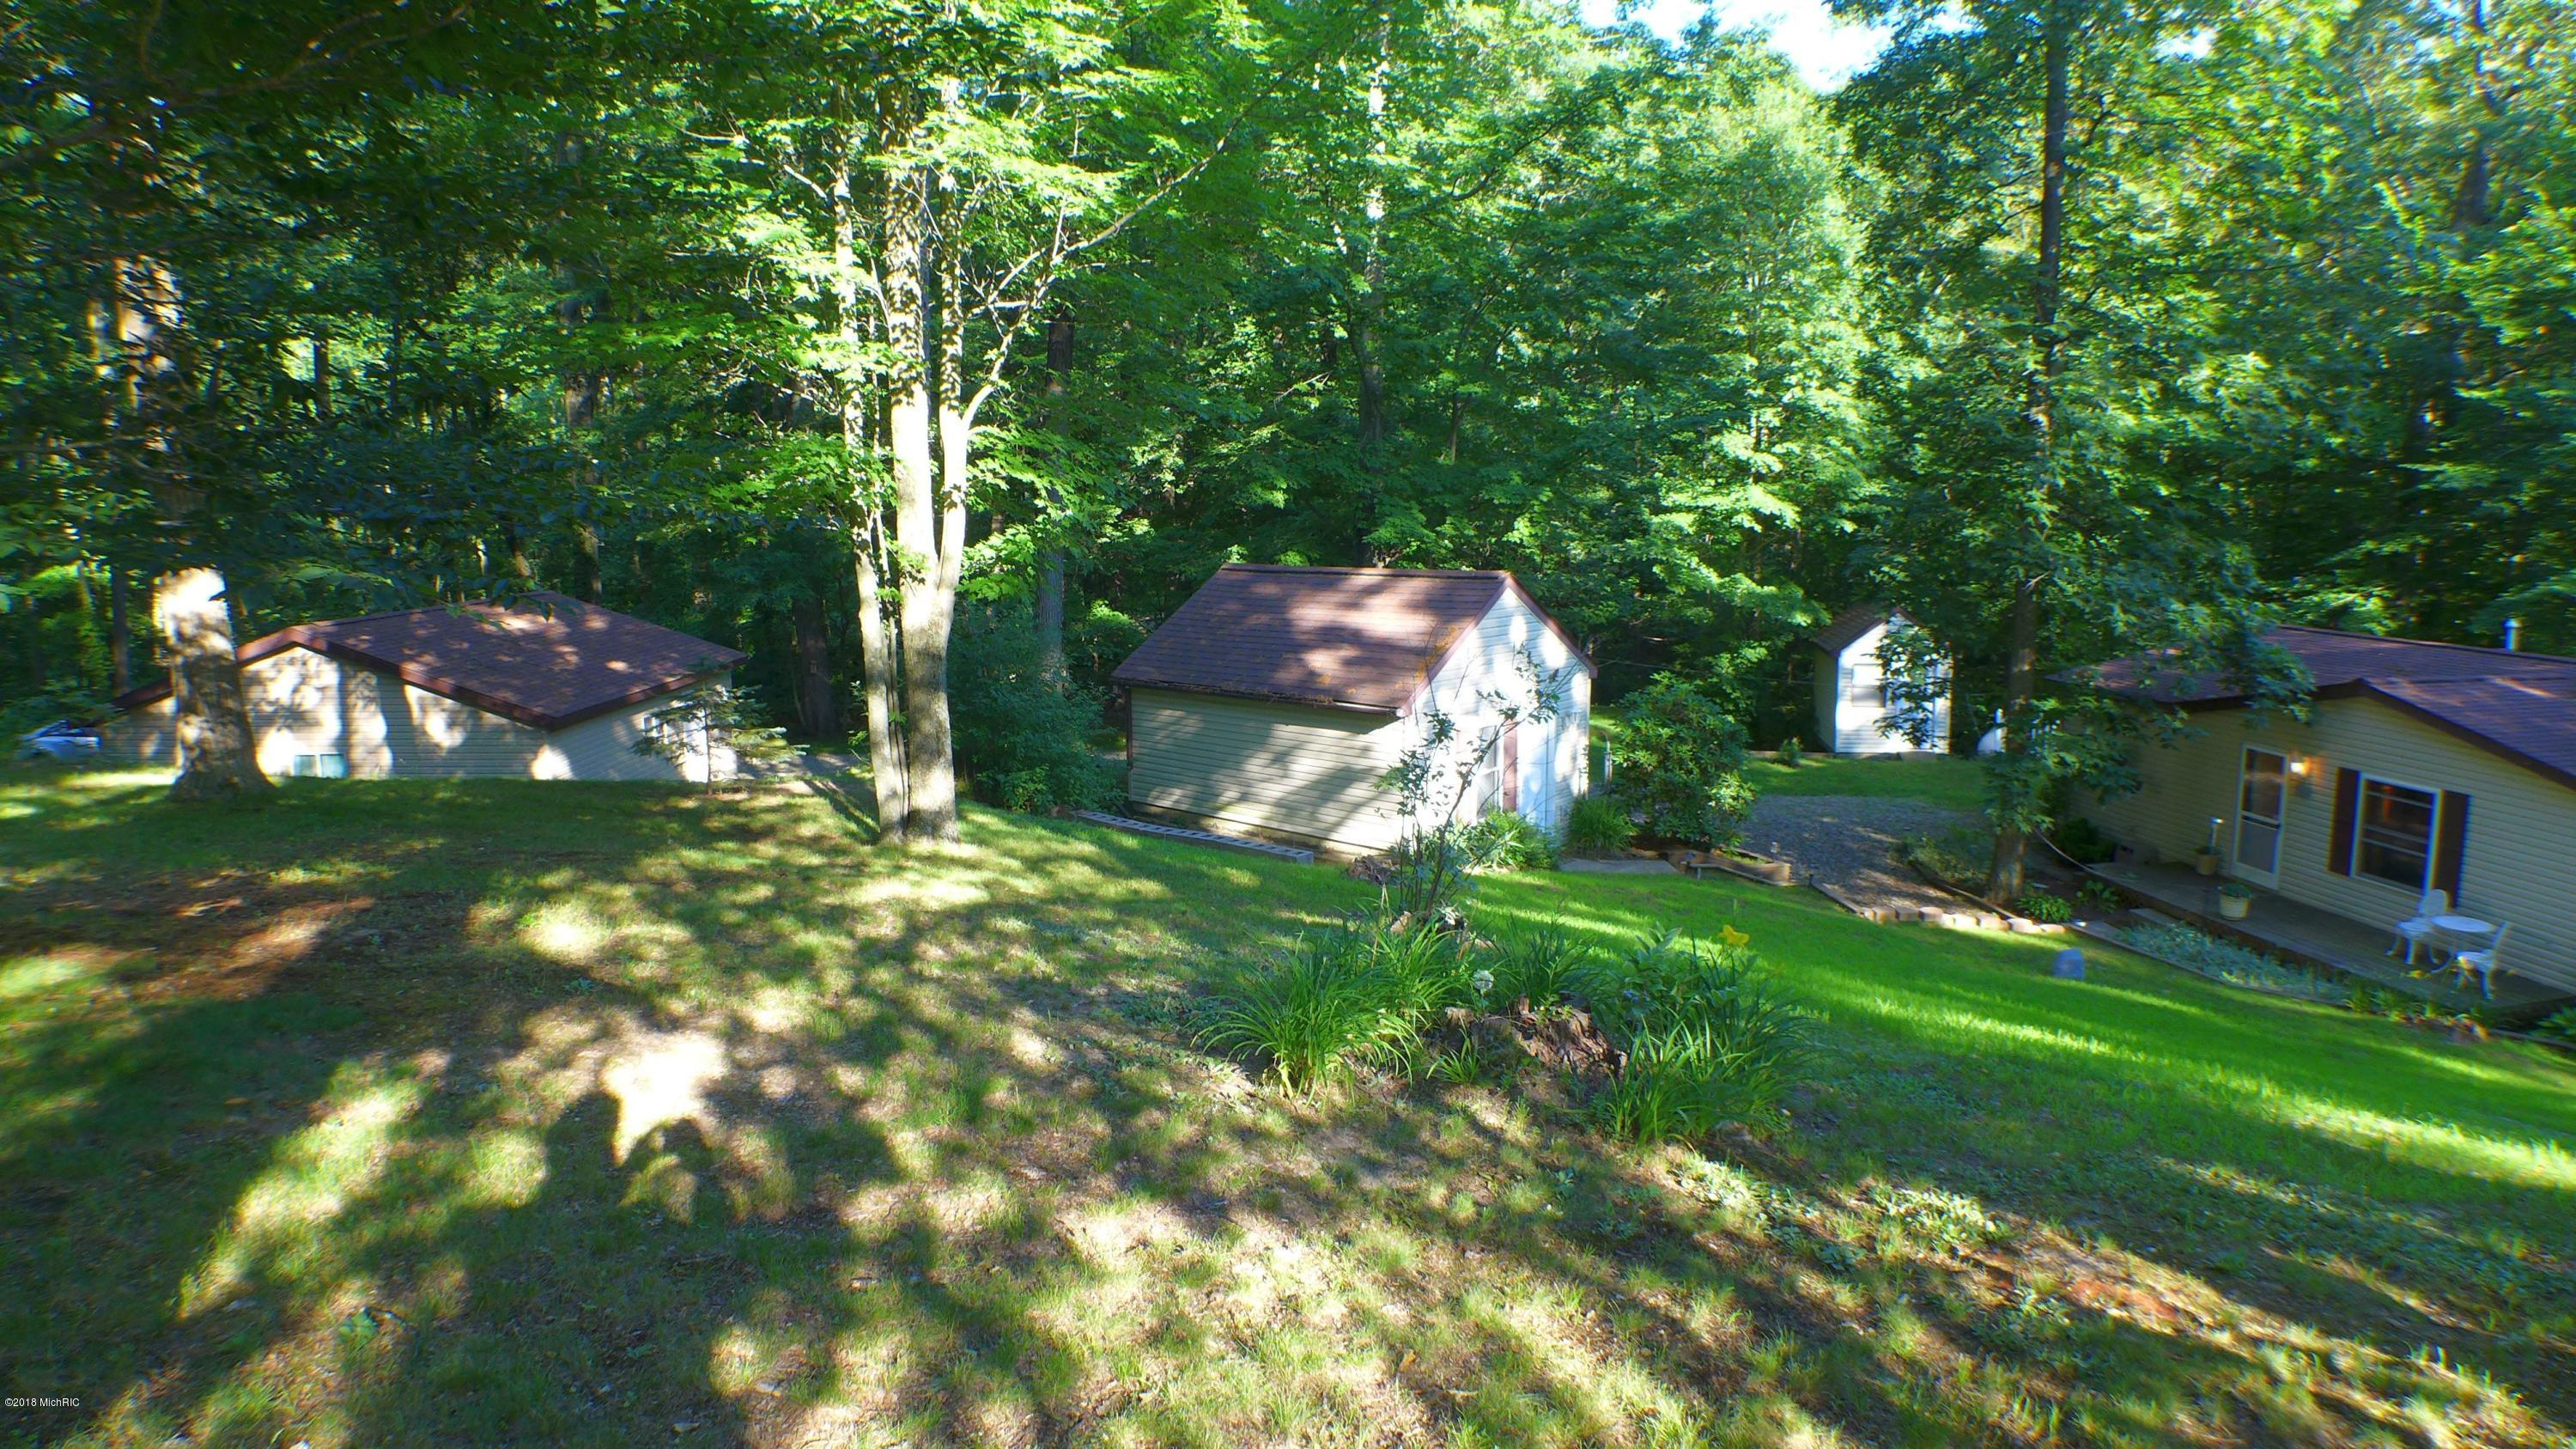 8500 Lammers , Delton, MI 49046 Photo 4